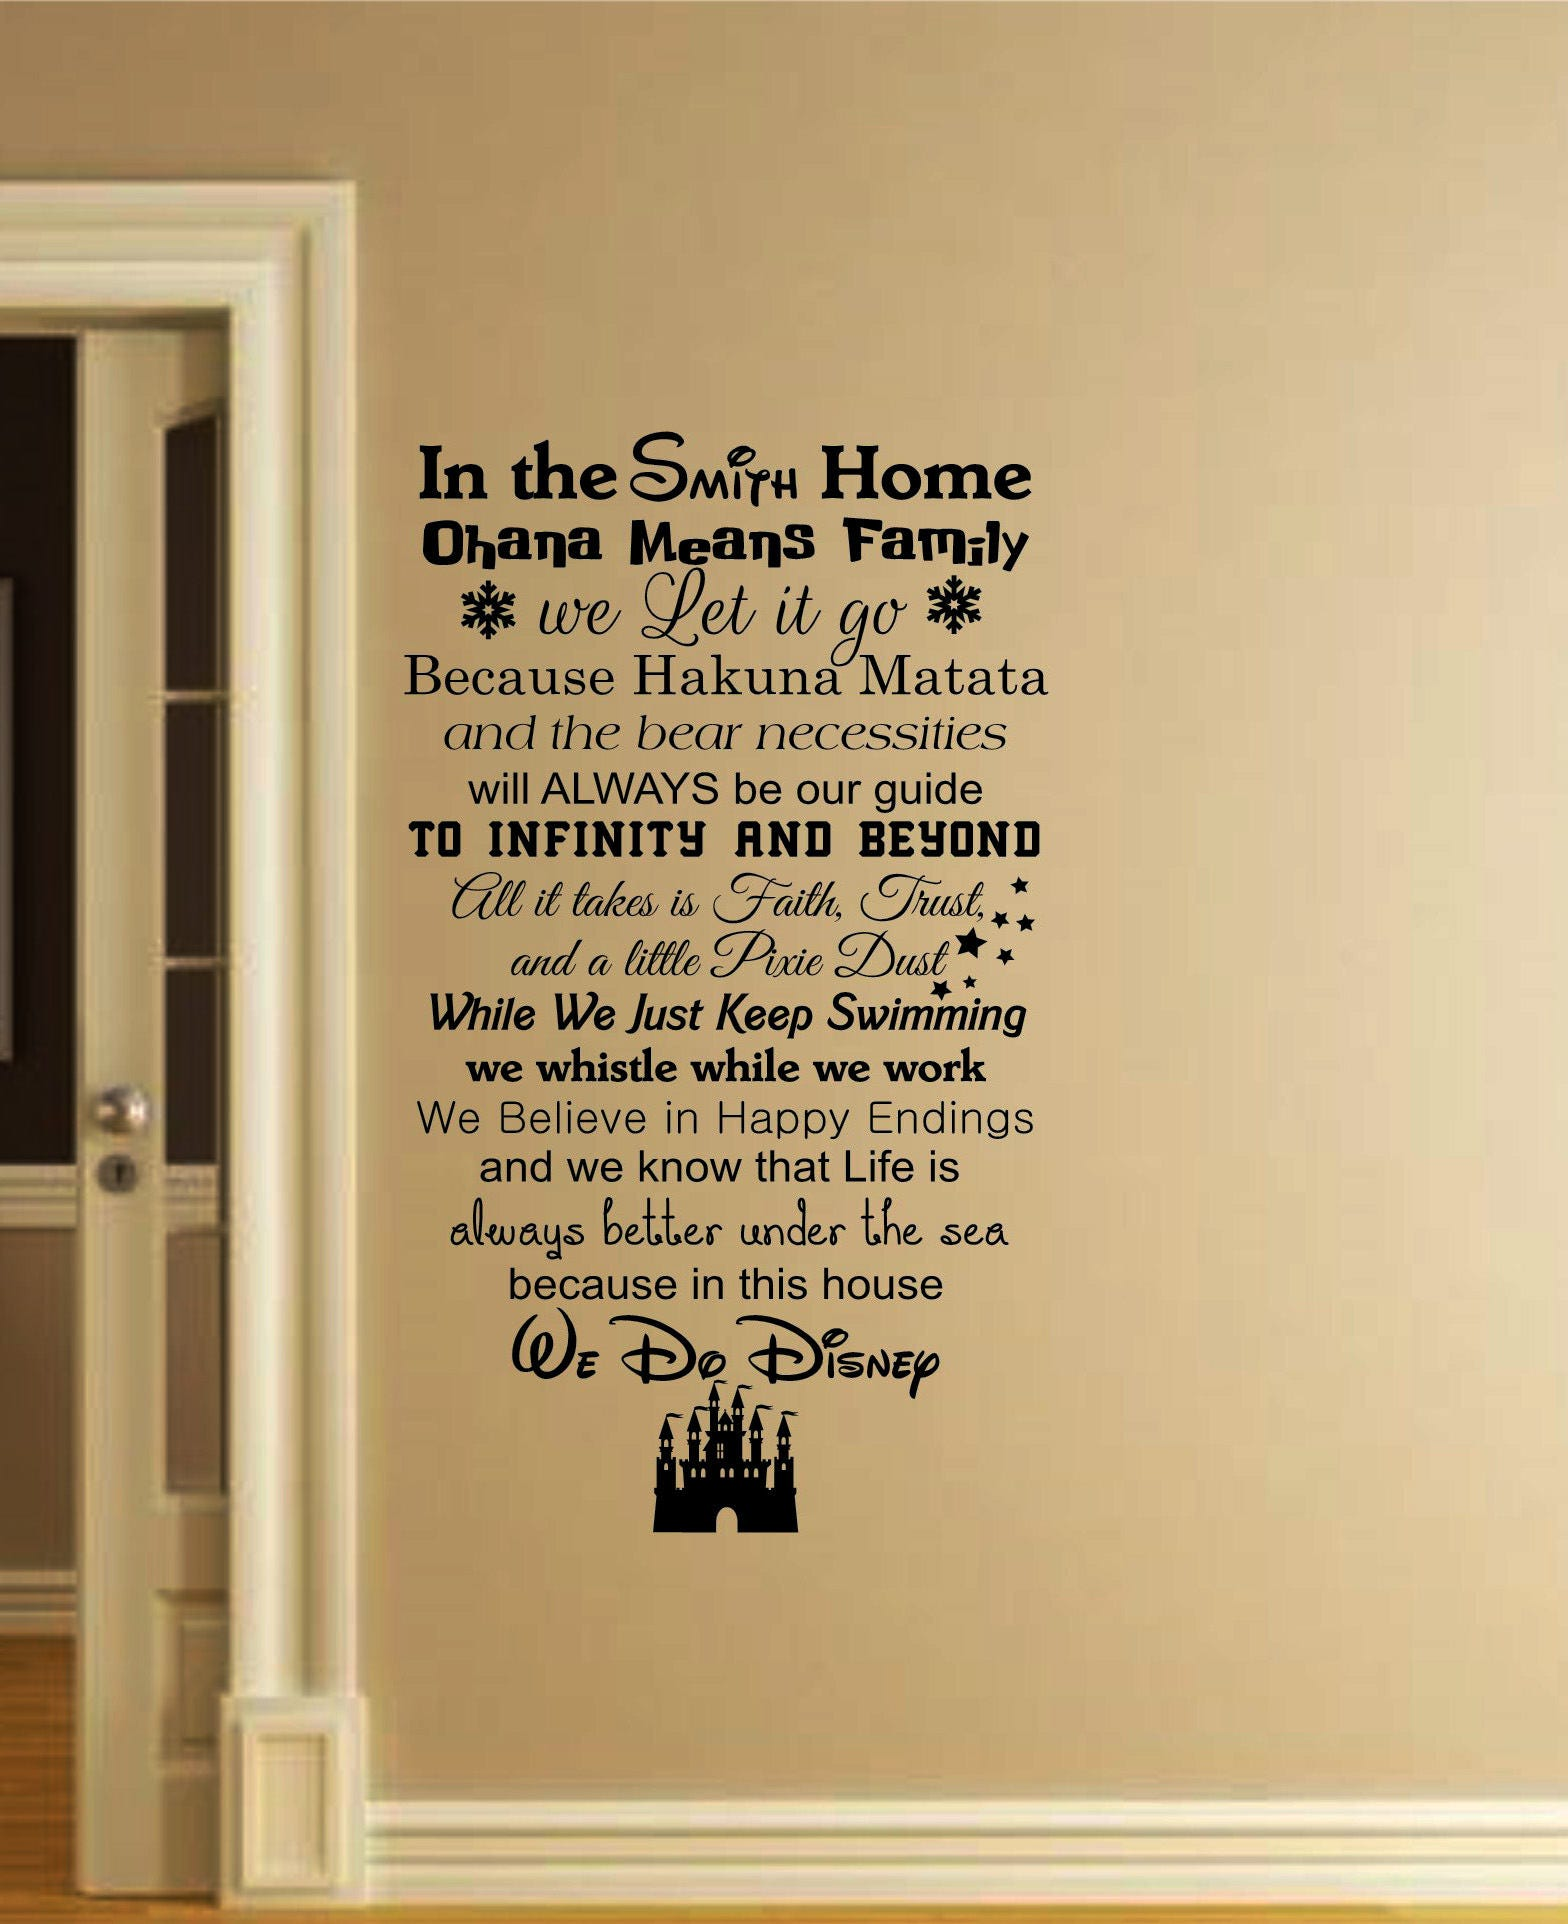 Disney Wall Decal Disney Home Decor-We Do Disney Wall